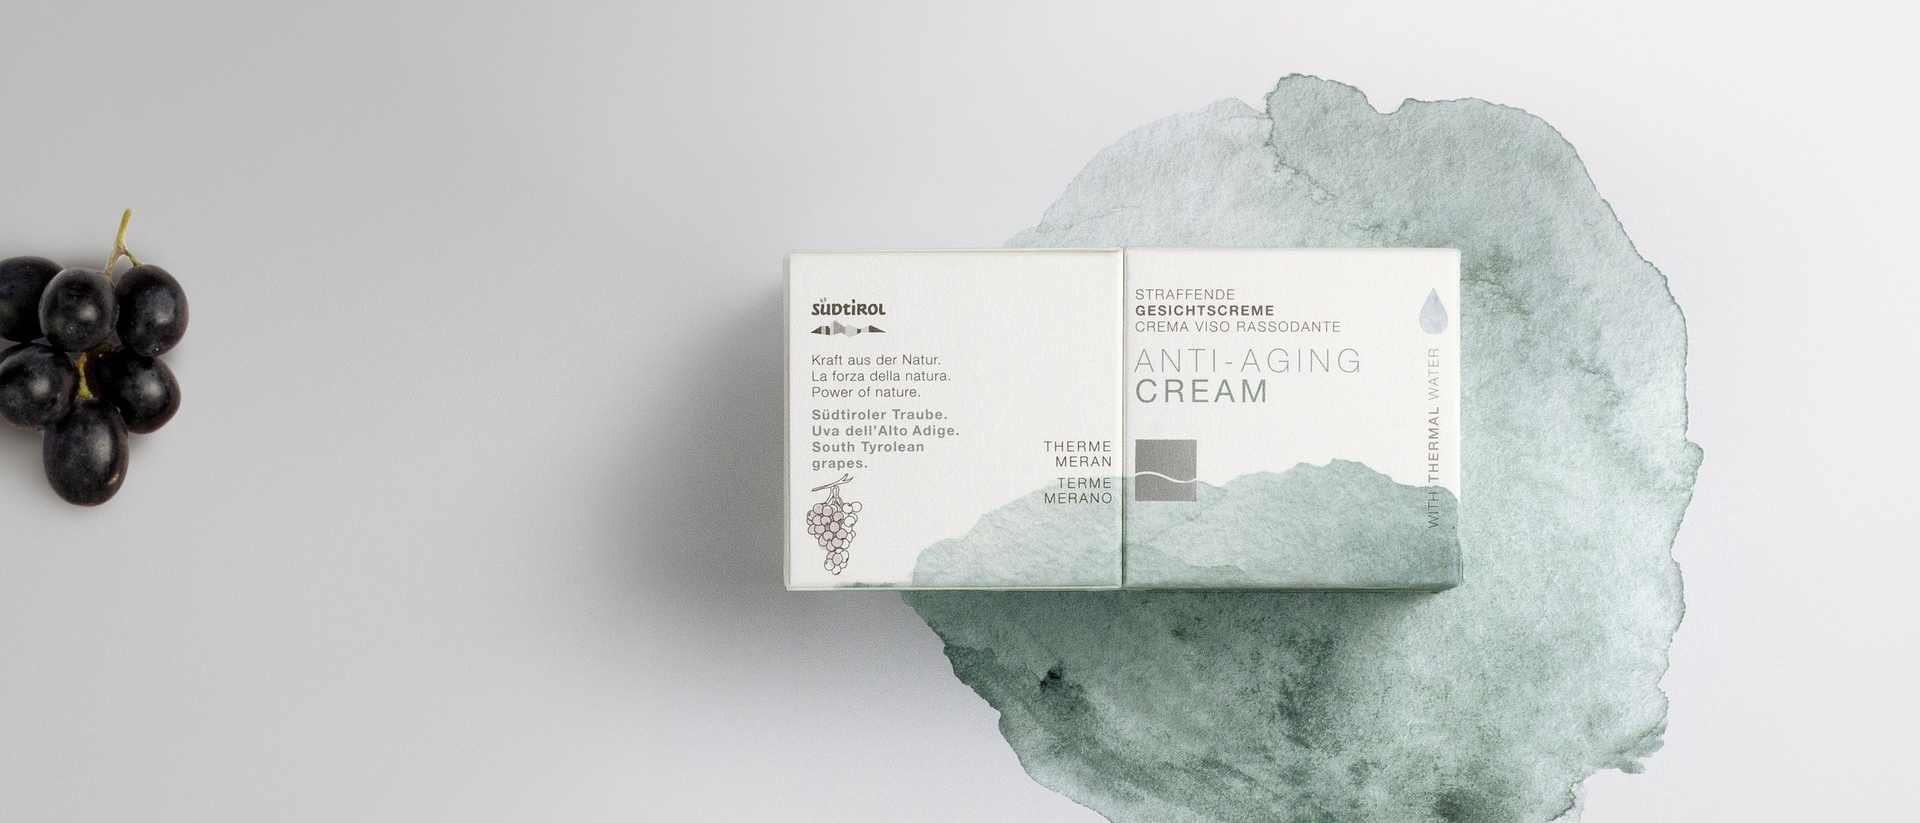 NEW! Anti-Aging Cream